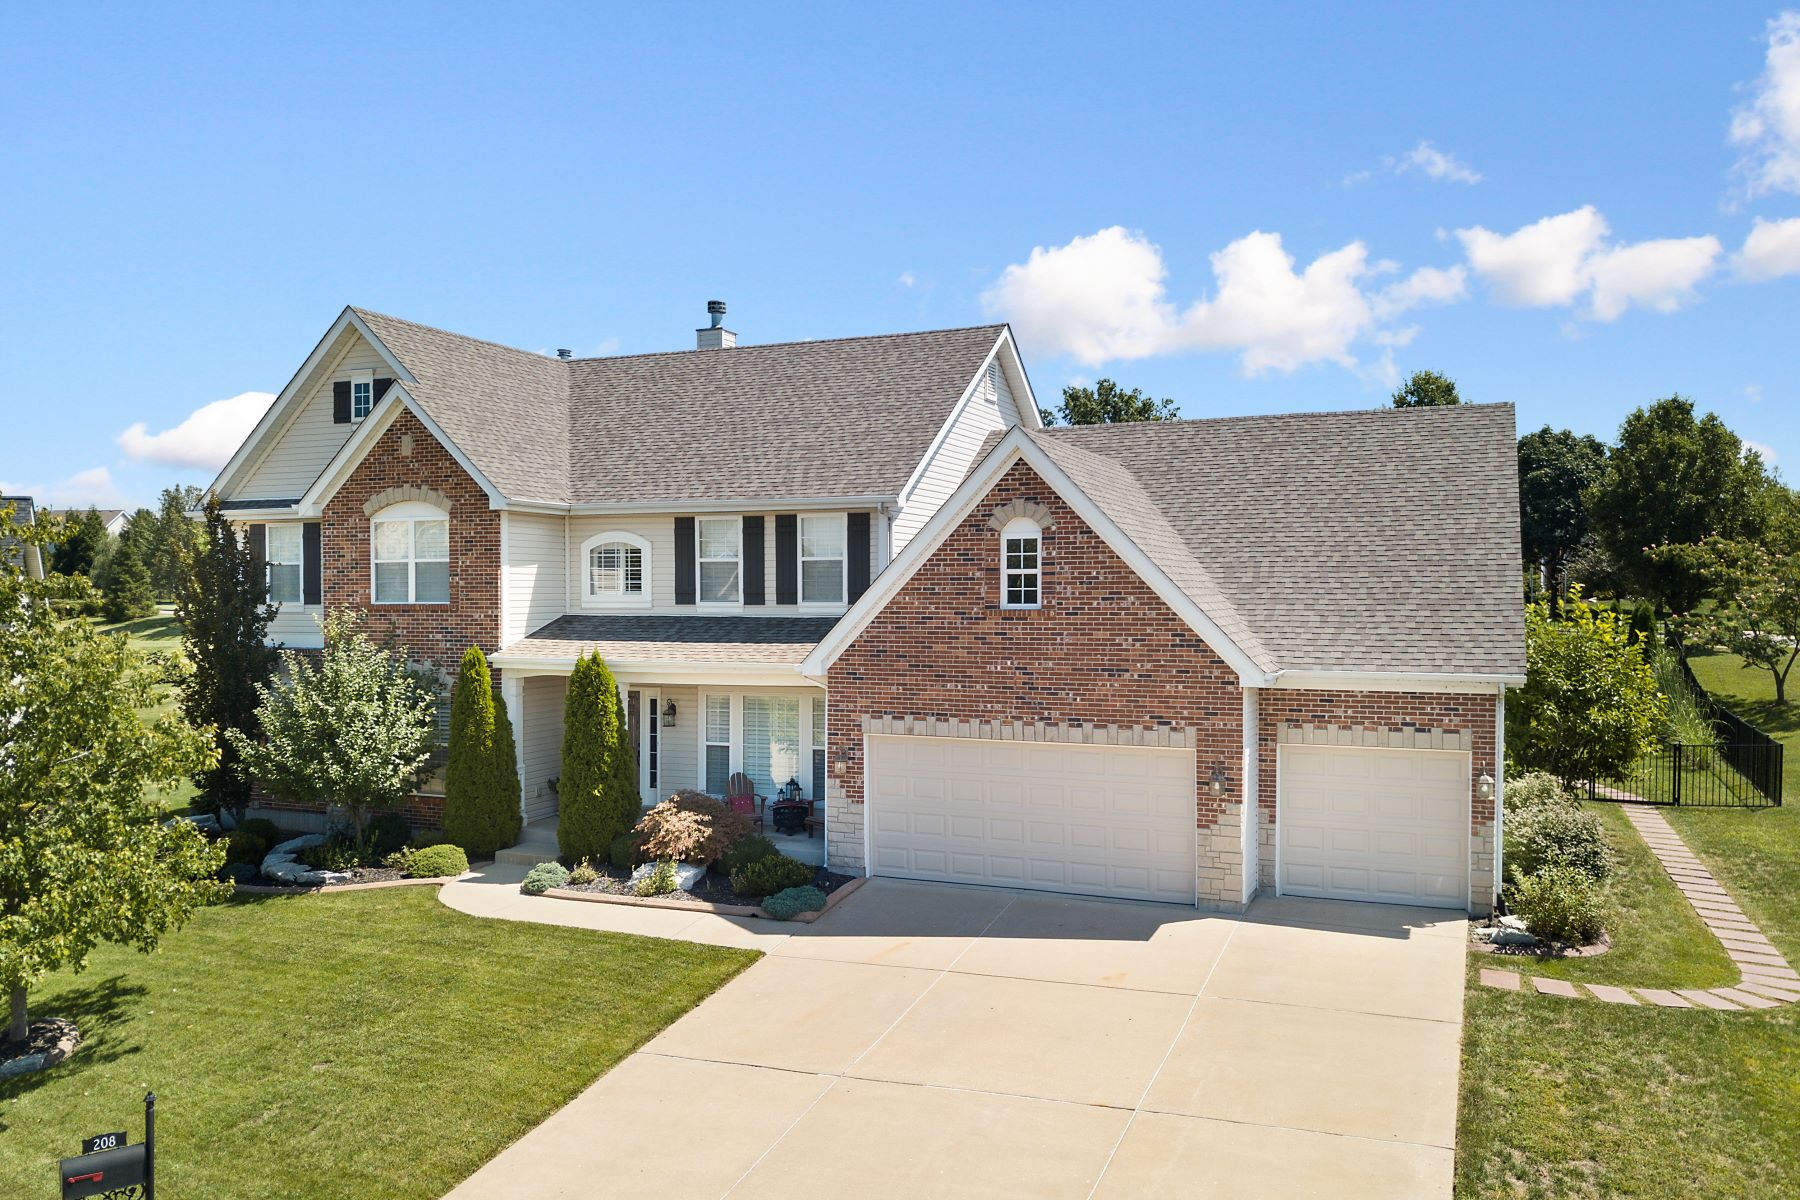 Property for Sale at Gorgeously Maintained Wildwood Two Story 208 Spyglass Hill Drive Wildwood, Missouri 63040 United States